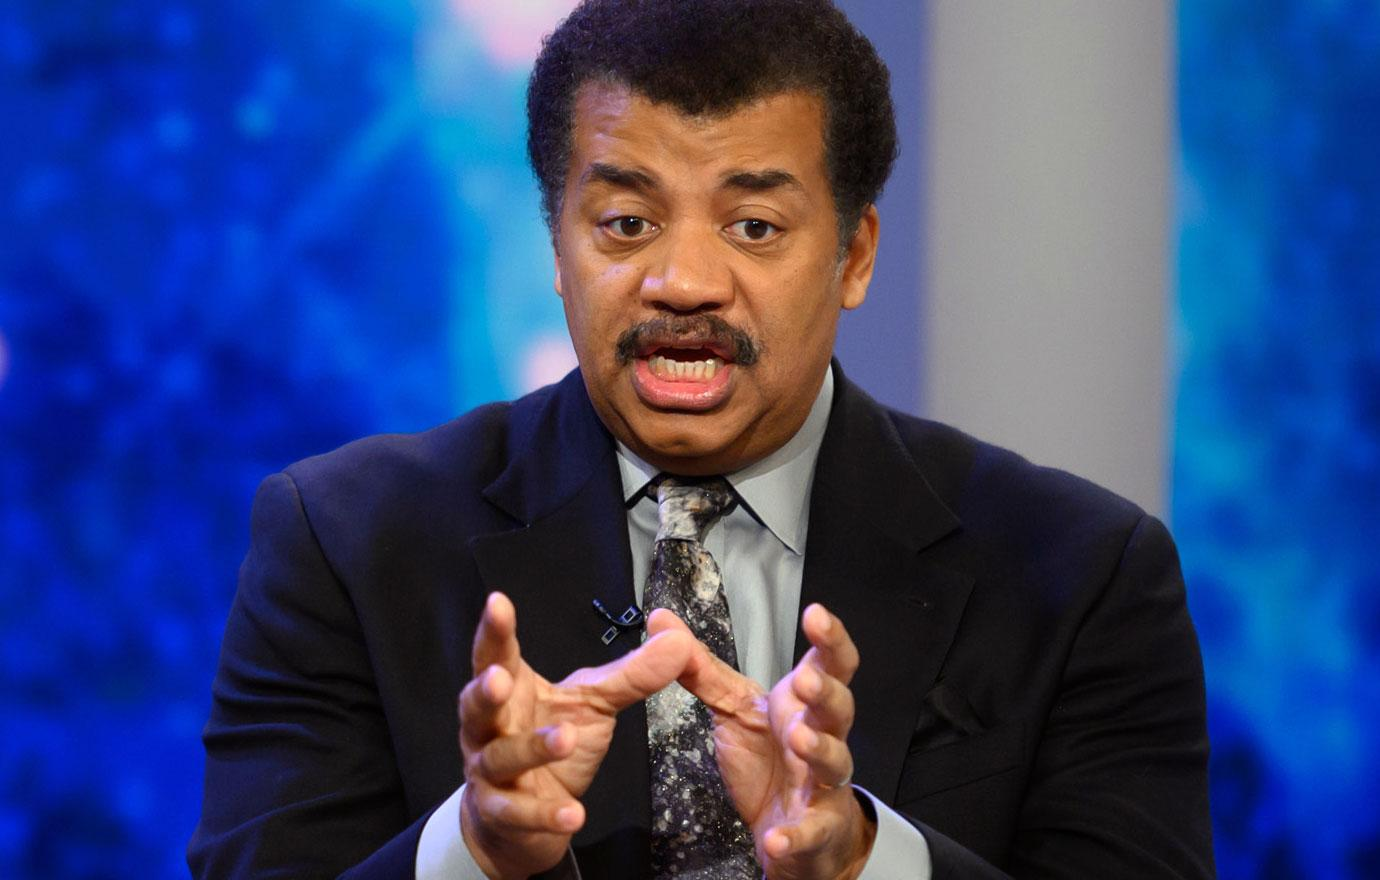 Celebrity Astronomer Neil DeGrasse Tyson Accused Of Sexual Misconduct